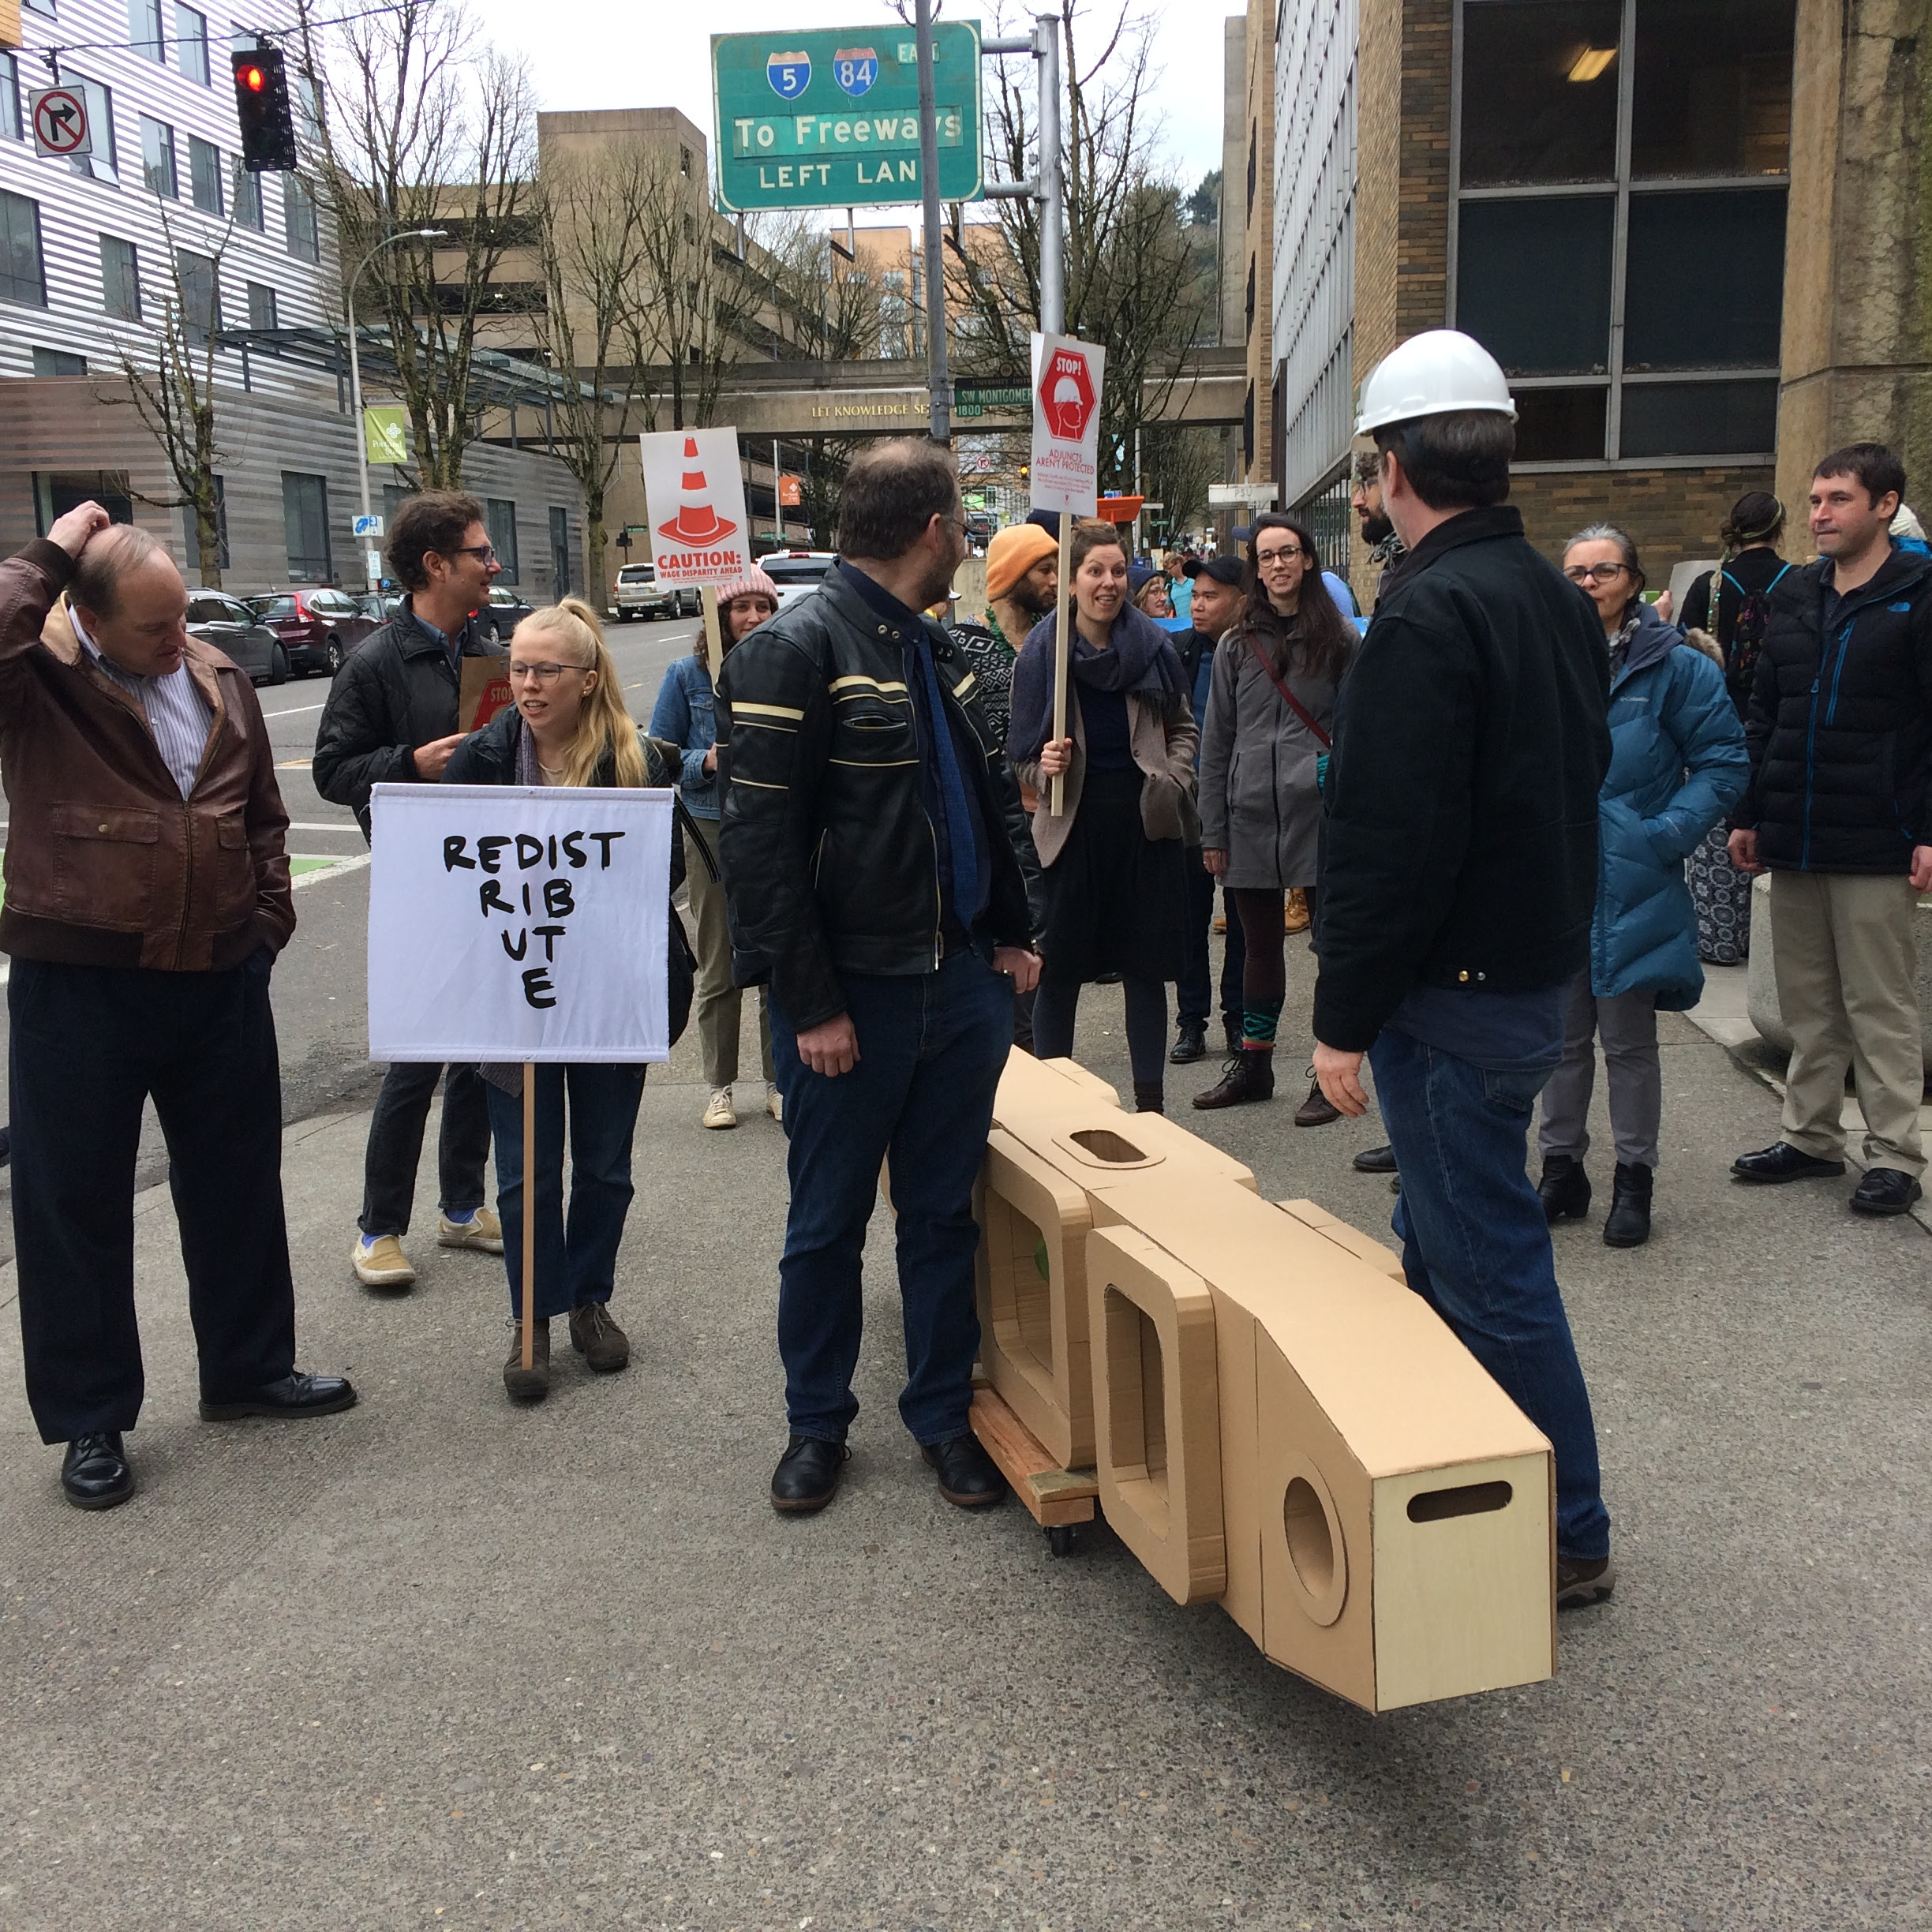 After the rally we walked with students, AAUP, GEU, SEIU, and PSUFA members to deliver a token of goodwill to President Shoureshi.